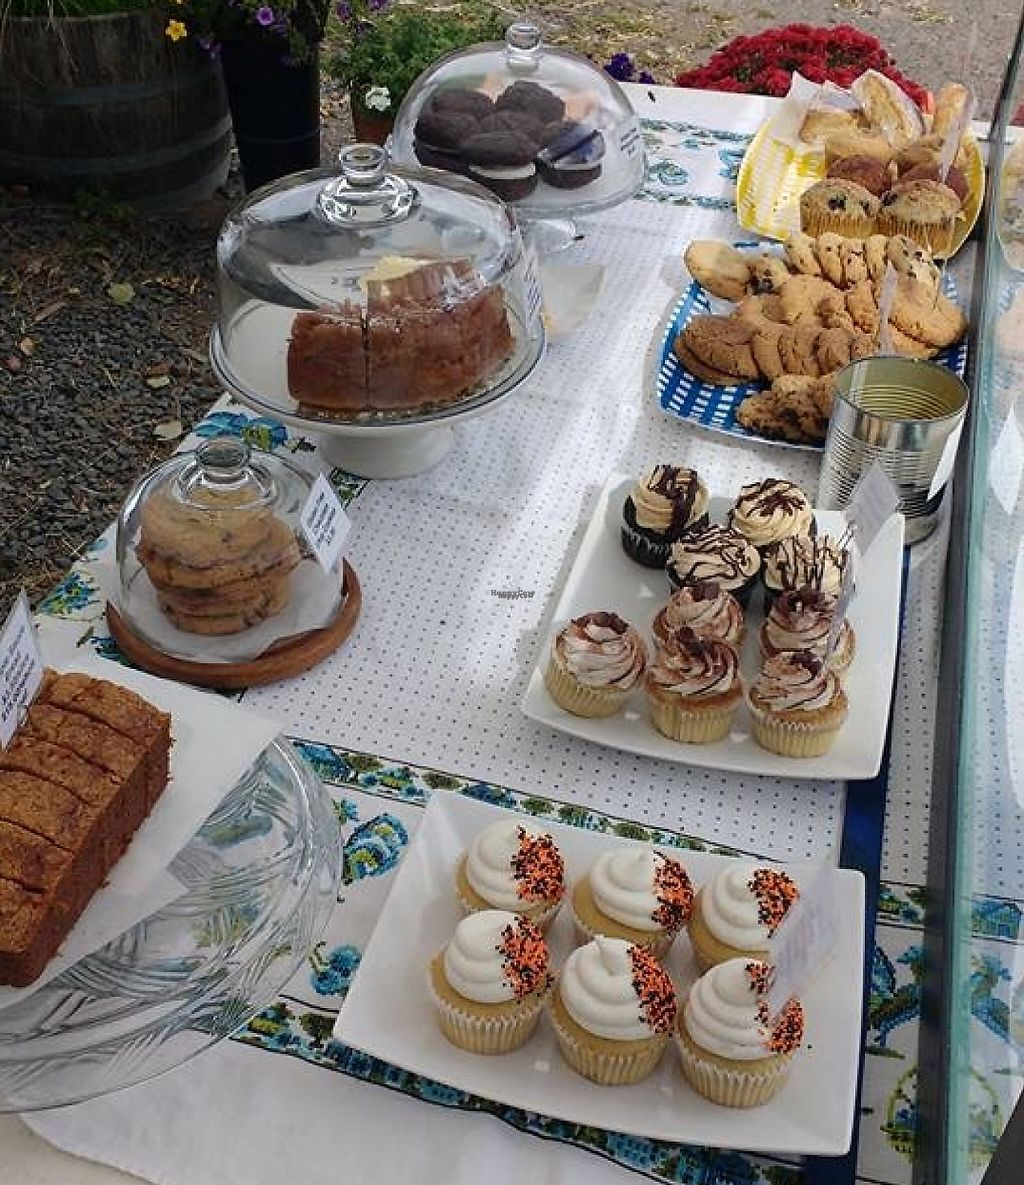 """Photo of Shoofly  by <a href=""""/members/profile/Shooflyveganbakery"""">Shooflyveganbakery</a> <br/>Table spread at sauvies island  <br/> November 1, 2016  - <a href='/contact/abuse/image/82236/221704'>Report</a>"""